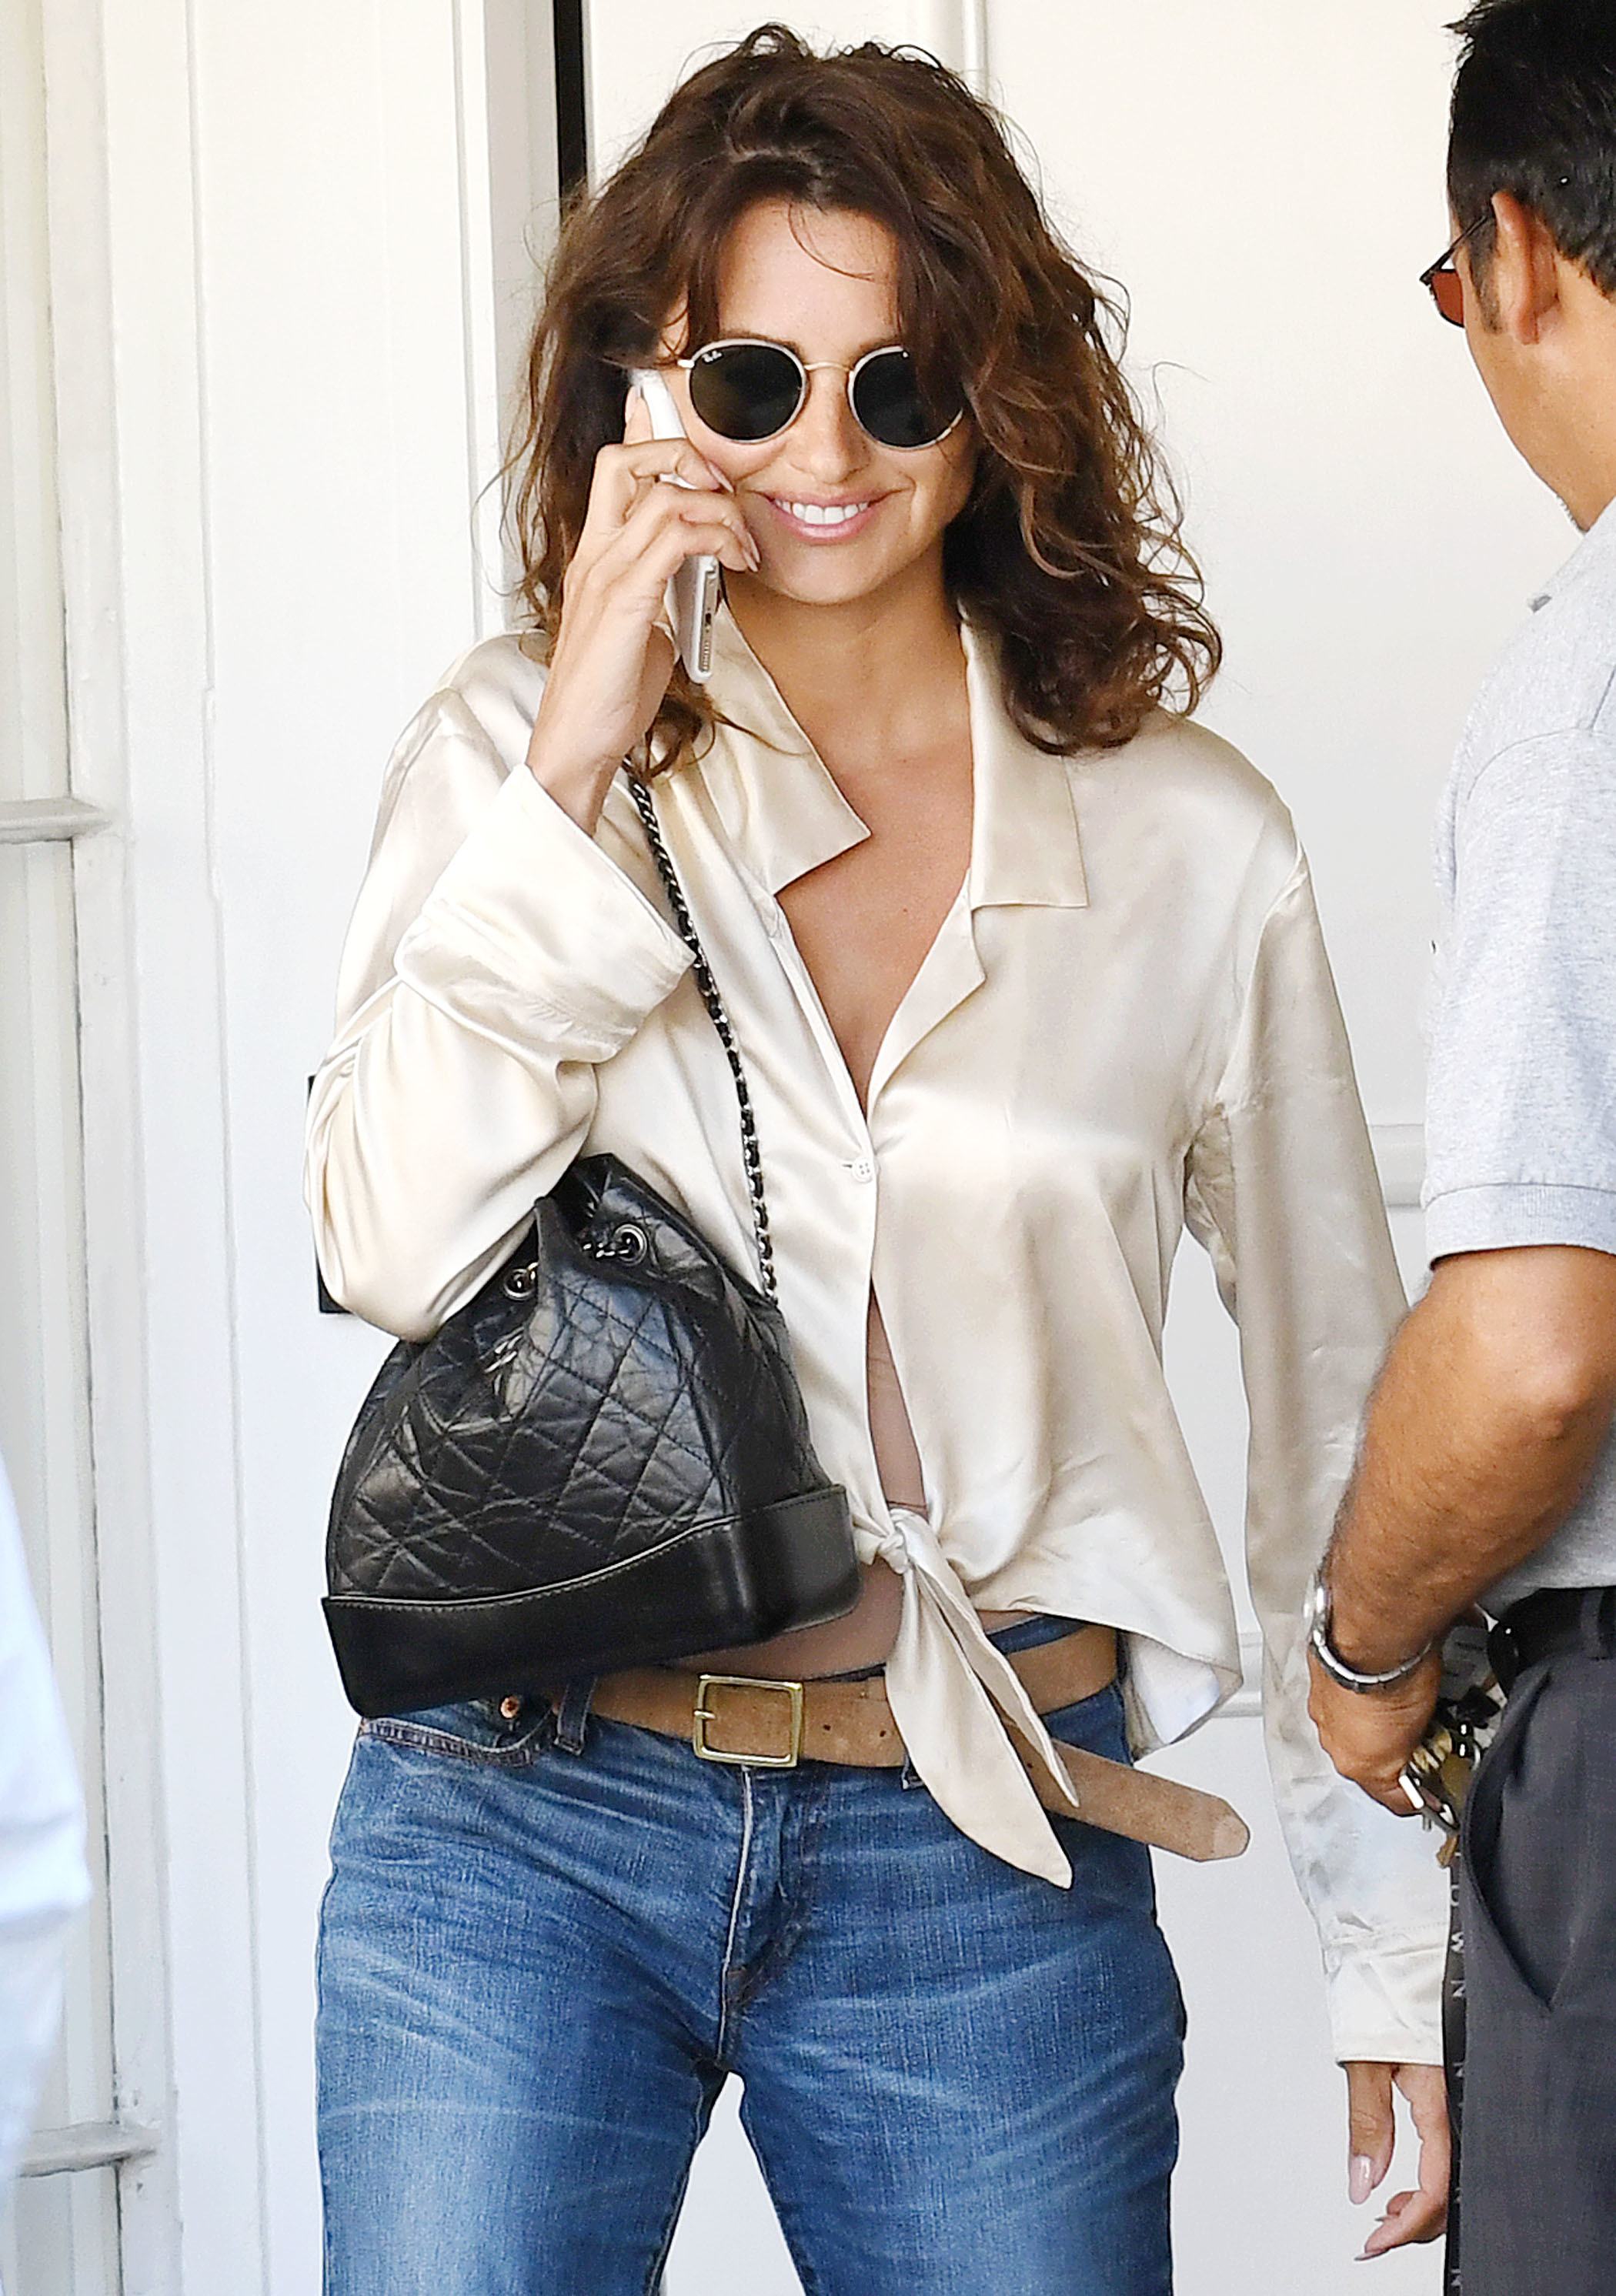 Penelope Cruz leaves a comestic center in Beverly Hills, Calif., on July 14, 2017.